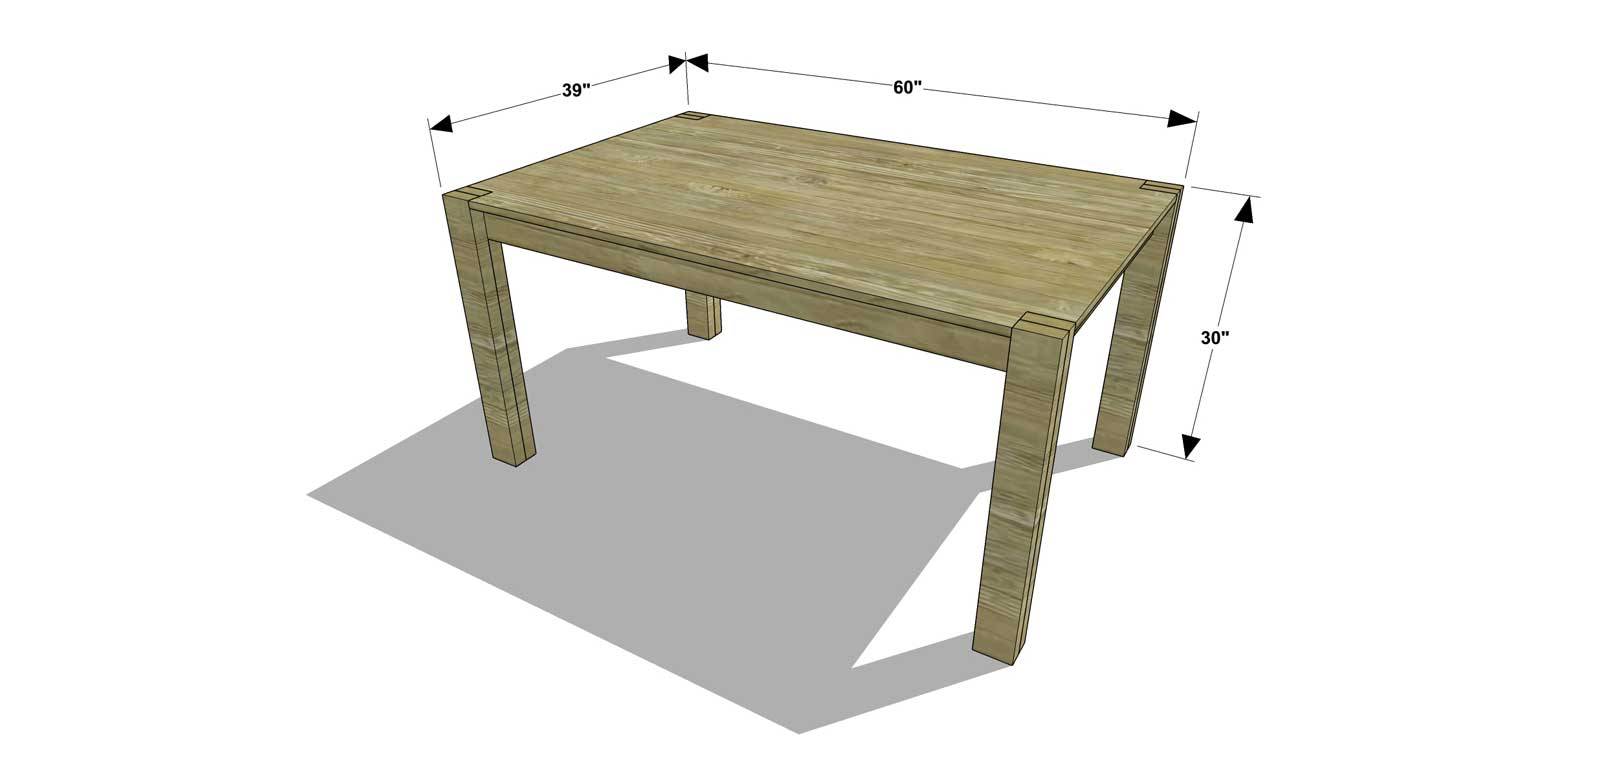 Free DIY Furniture Plans // How To Build A 60 Inch Rectangular Dining Table    The Design Confidential